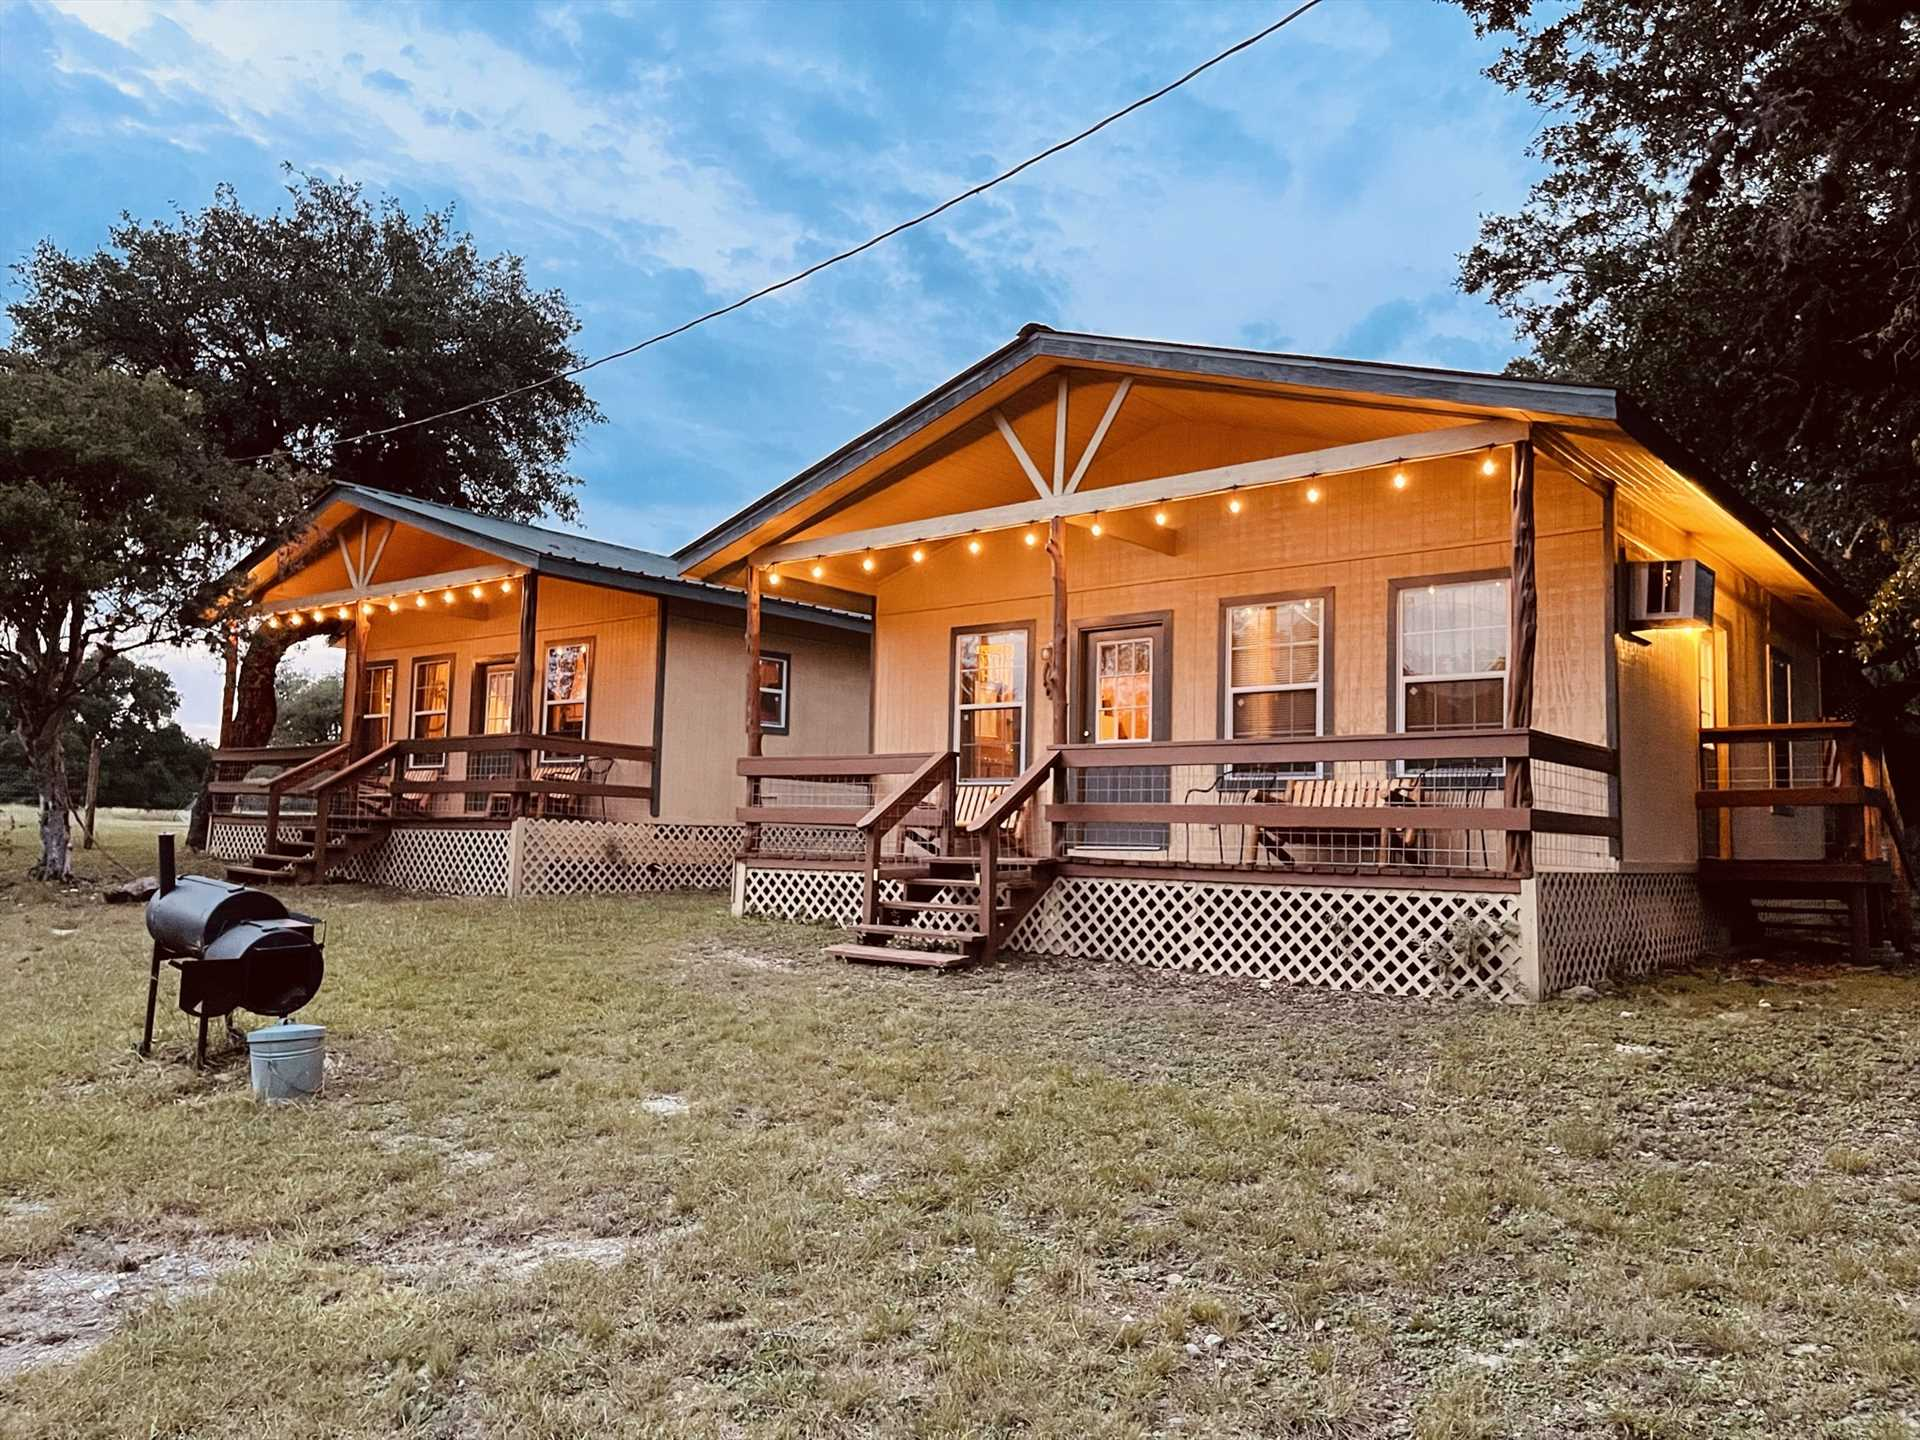 The Gone Fishin' and Lone Star Cabins at the Retreat provide great accommodations for up to 14 more of your folks!